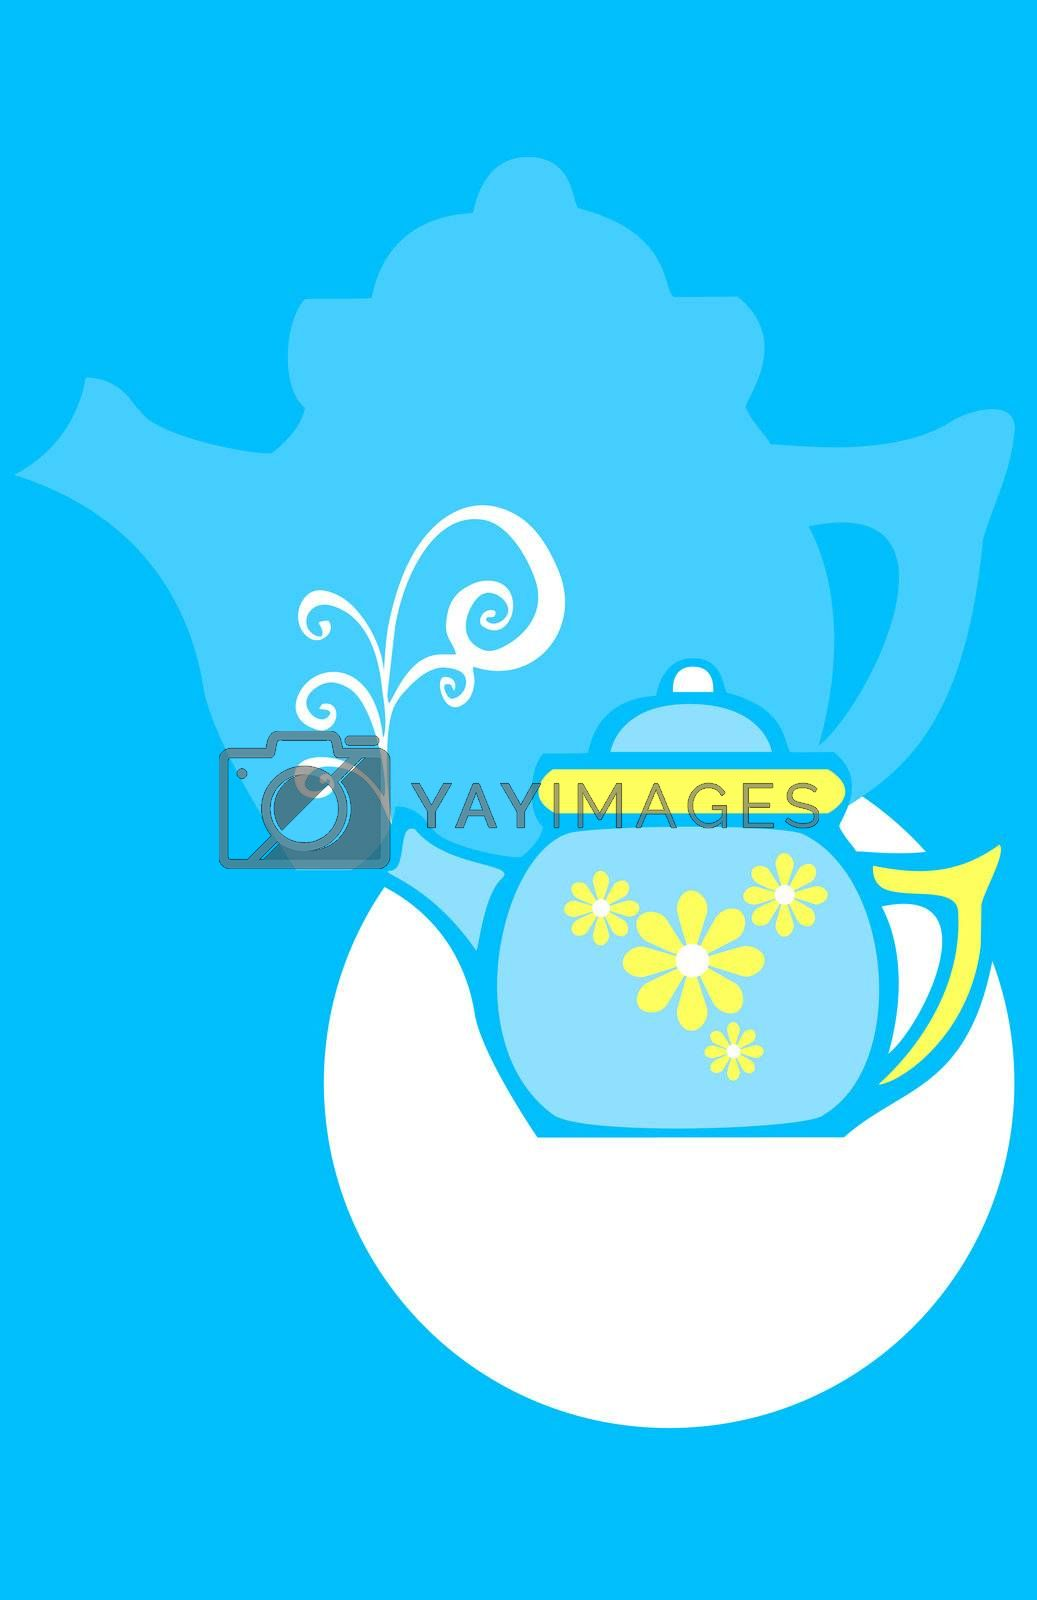 Negative image coffee cup and pot with seventies style swirls.